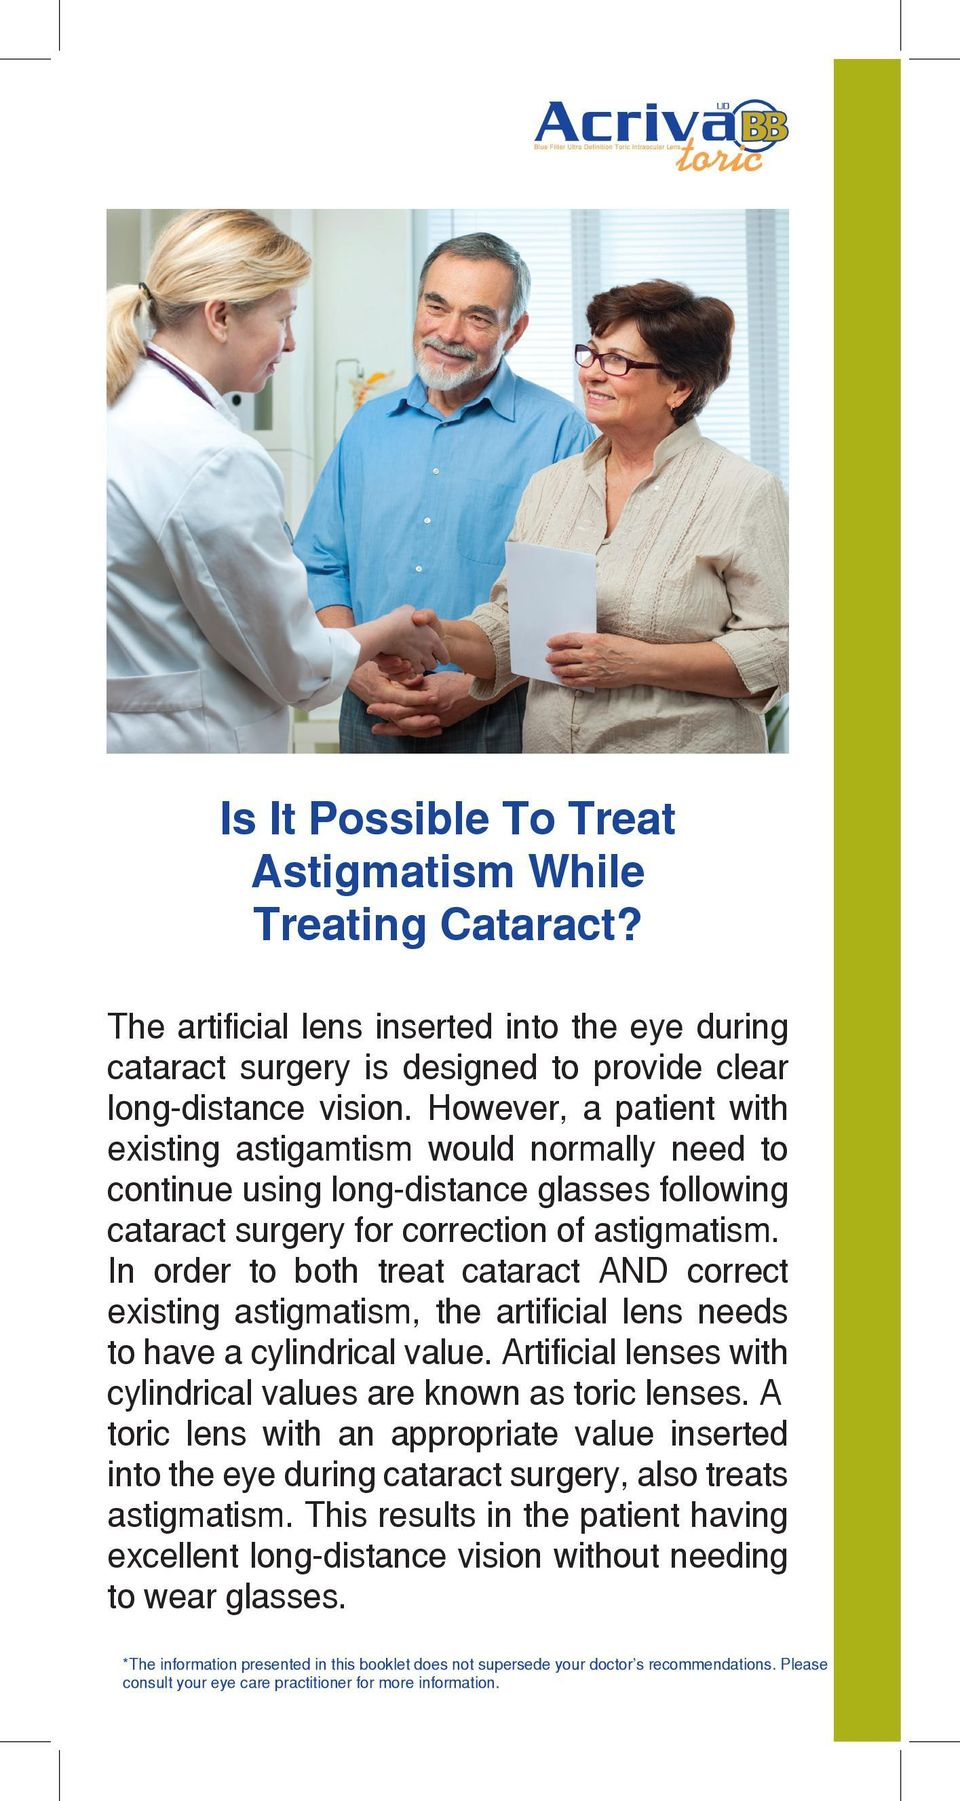 In order to both treat cataract AND correct existing astigmatism, the artificial lens needs to have a cylindrical value.